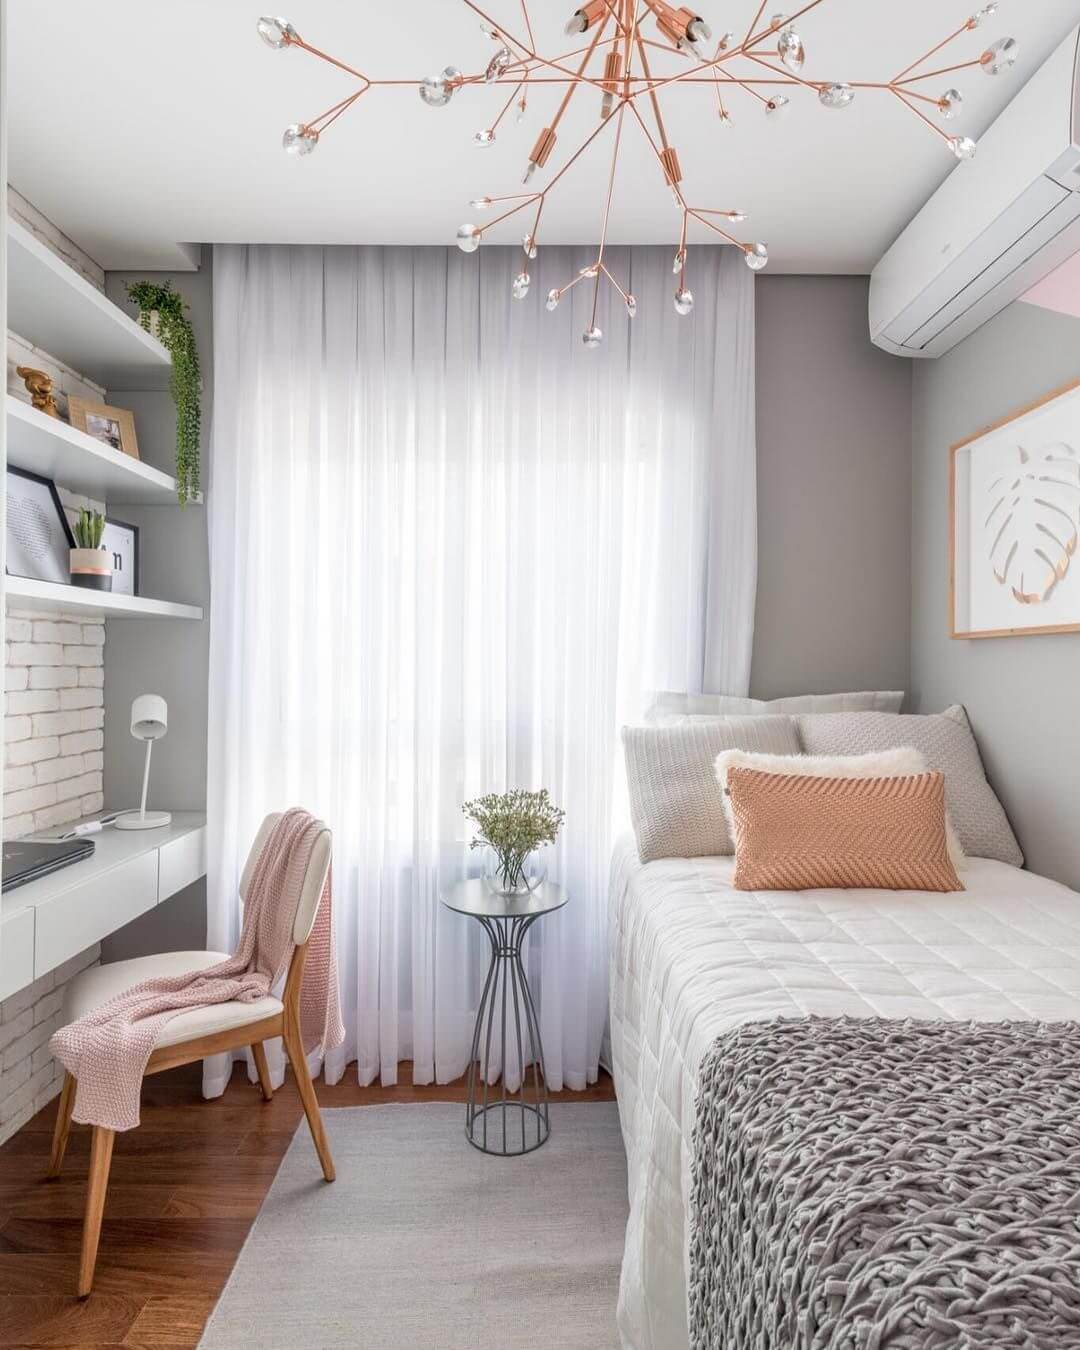 25 Small Bedroom Ideas That Are Look Stylishly & Space Saving on Small Room Ideas For Girls  id=62588